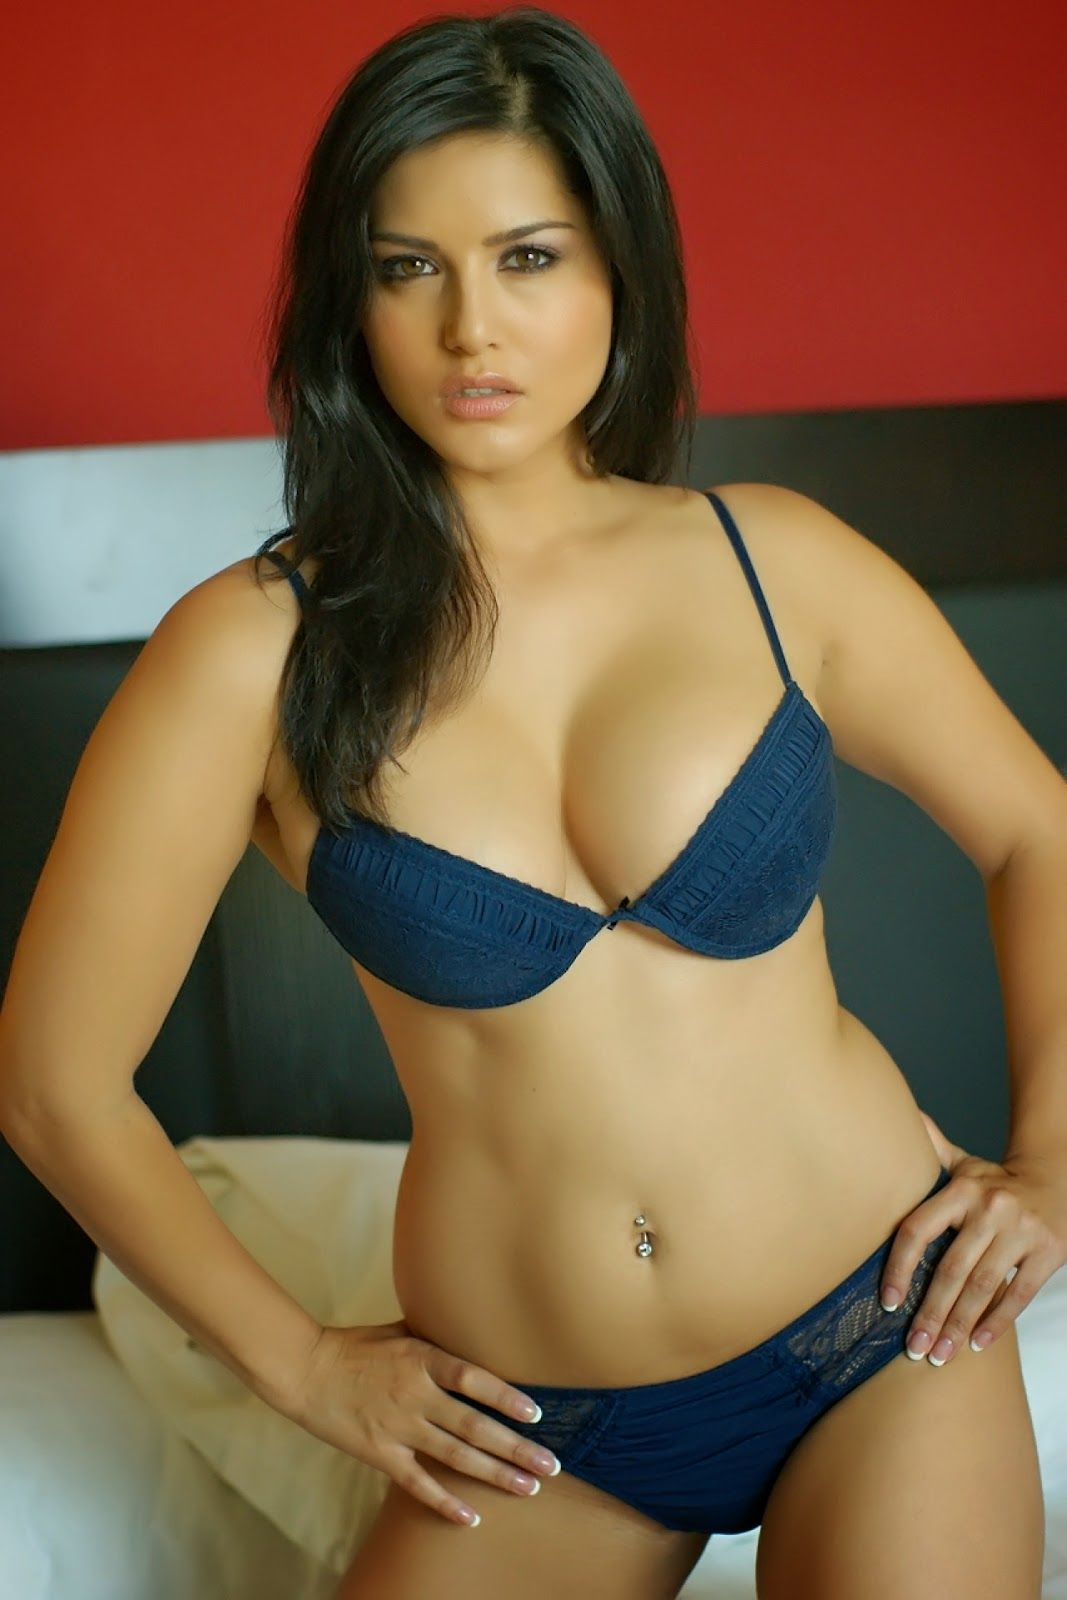 Pin On Sunny Leone Cute And Hot Pictures